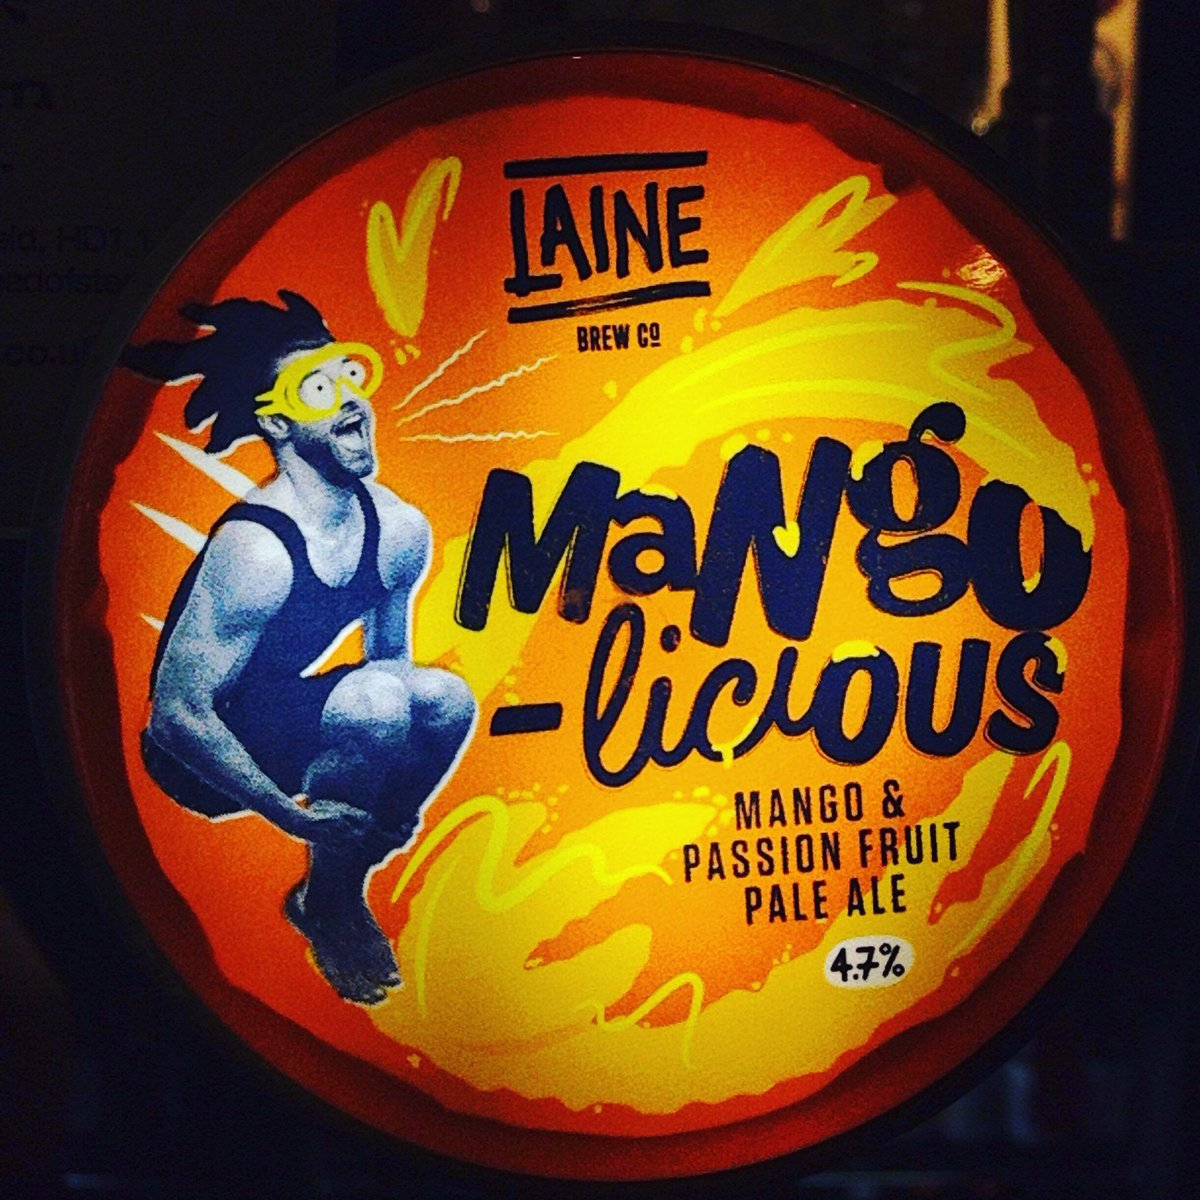 I want something delicious, maybe something mangolicious! #headofsteamhuddersfield #craftbeer #tasty #lainebrewery #cameronsbrewery #mango #mangomadness #beerme